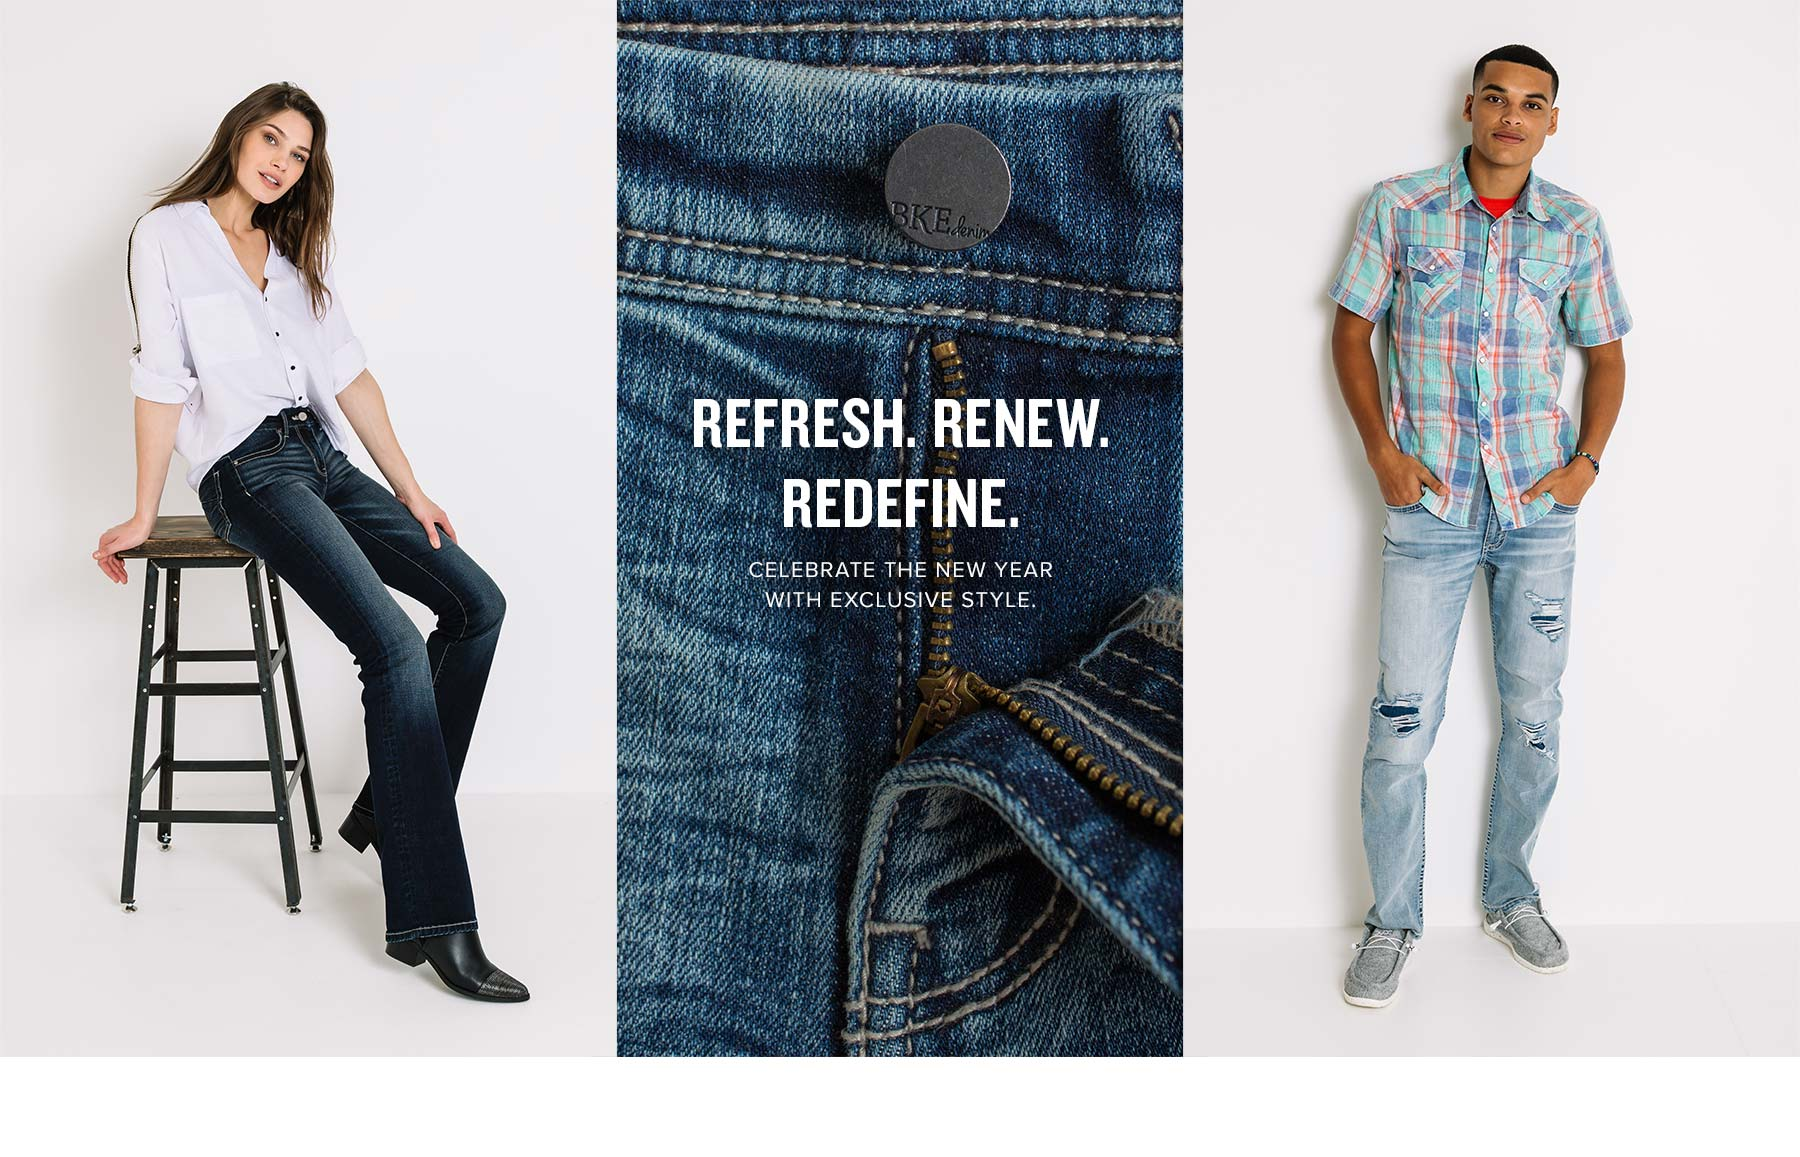 Refresh. Renew. Redefine. Celebrate the new year with exclusive style.